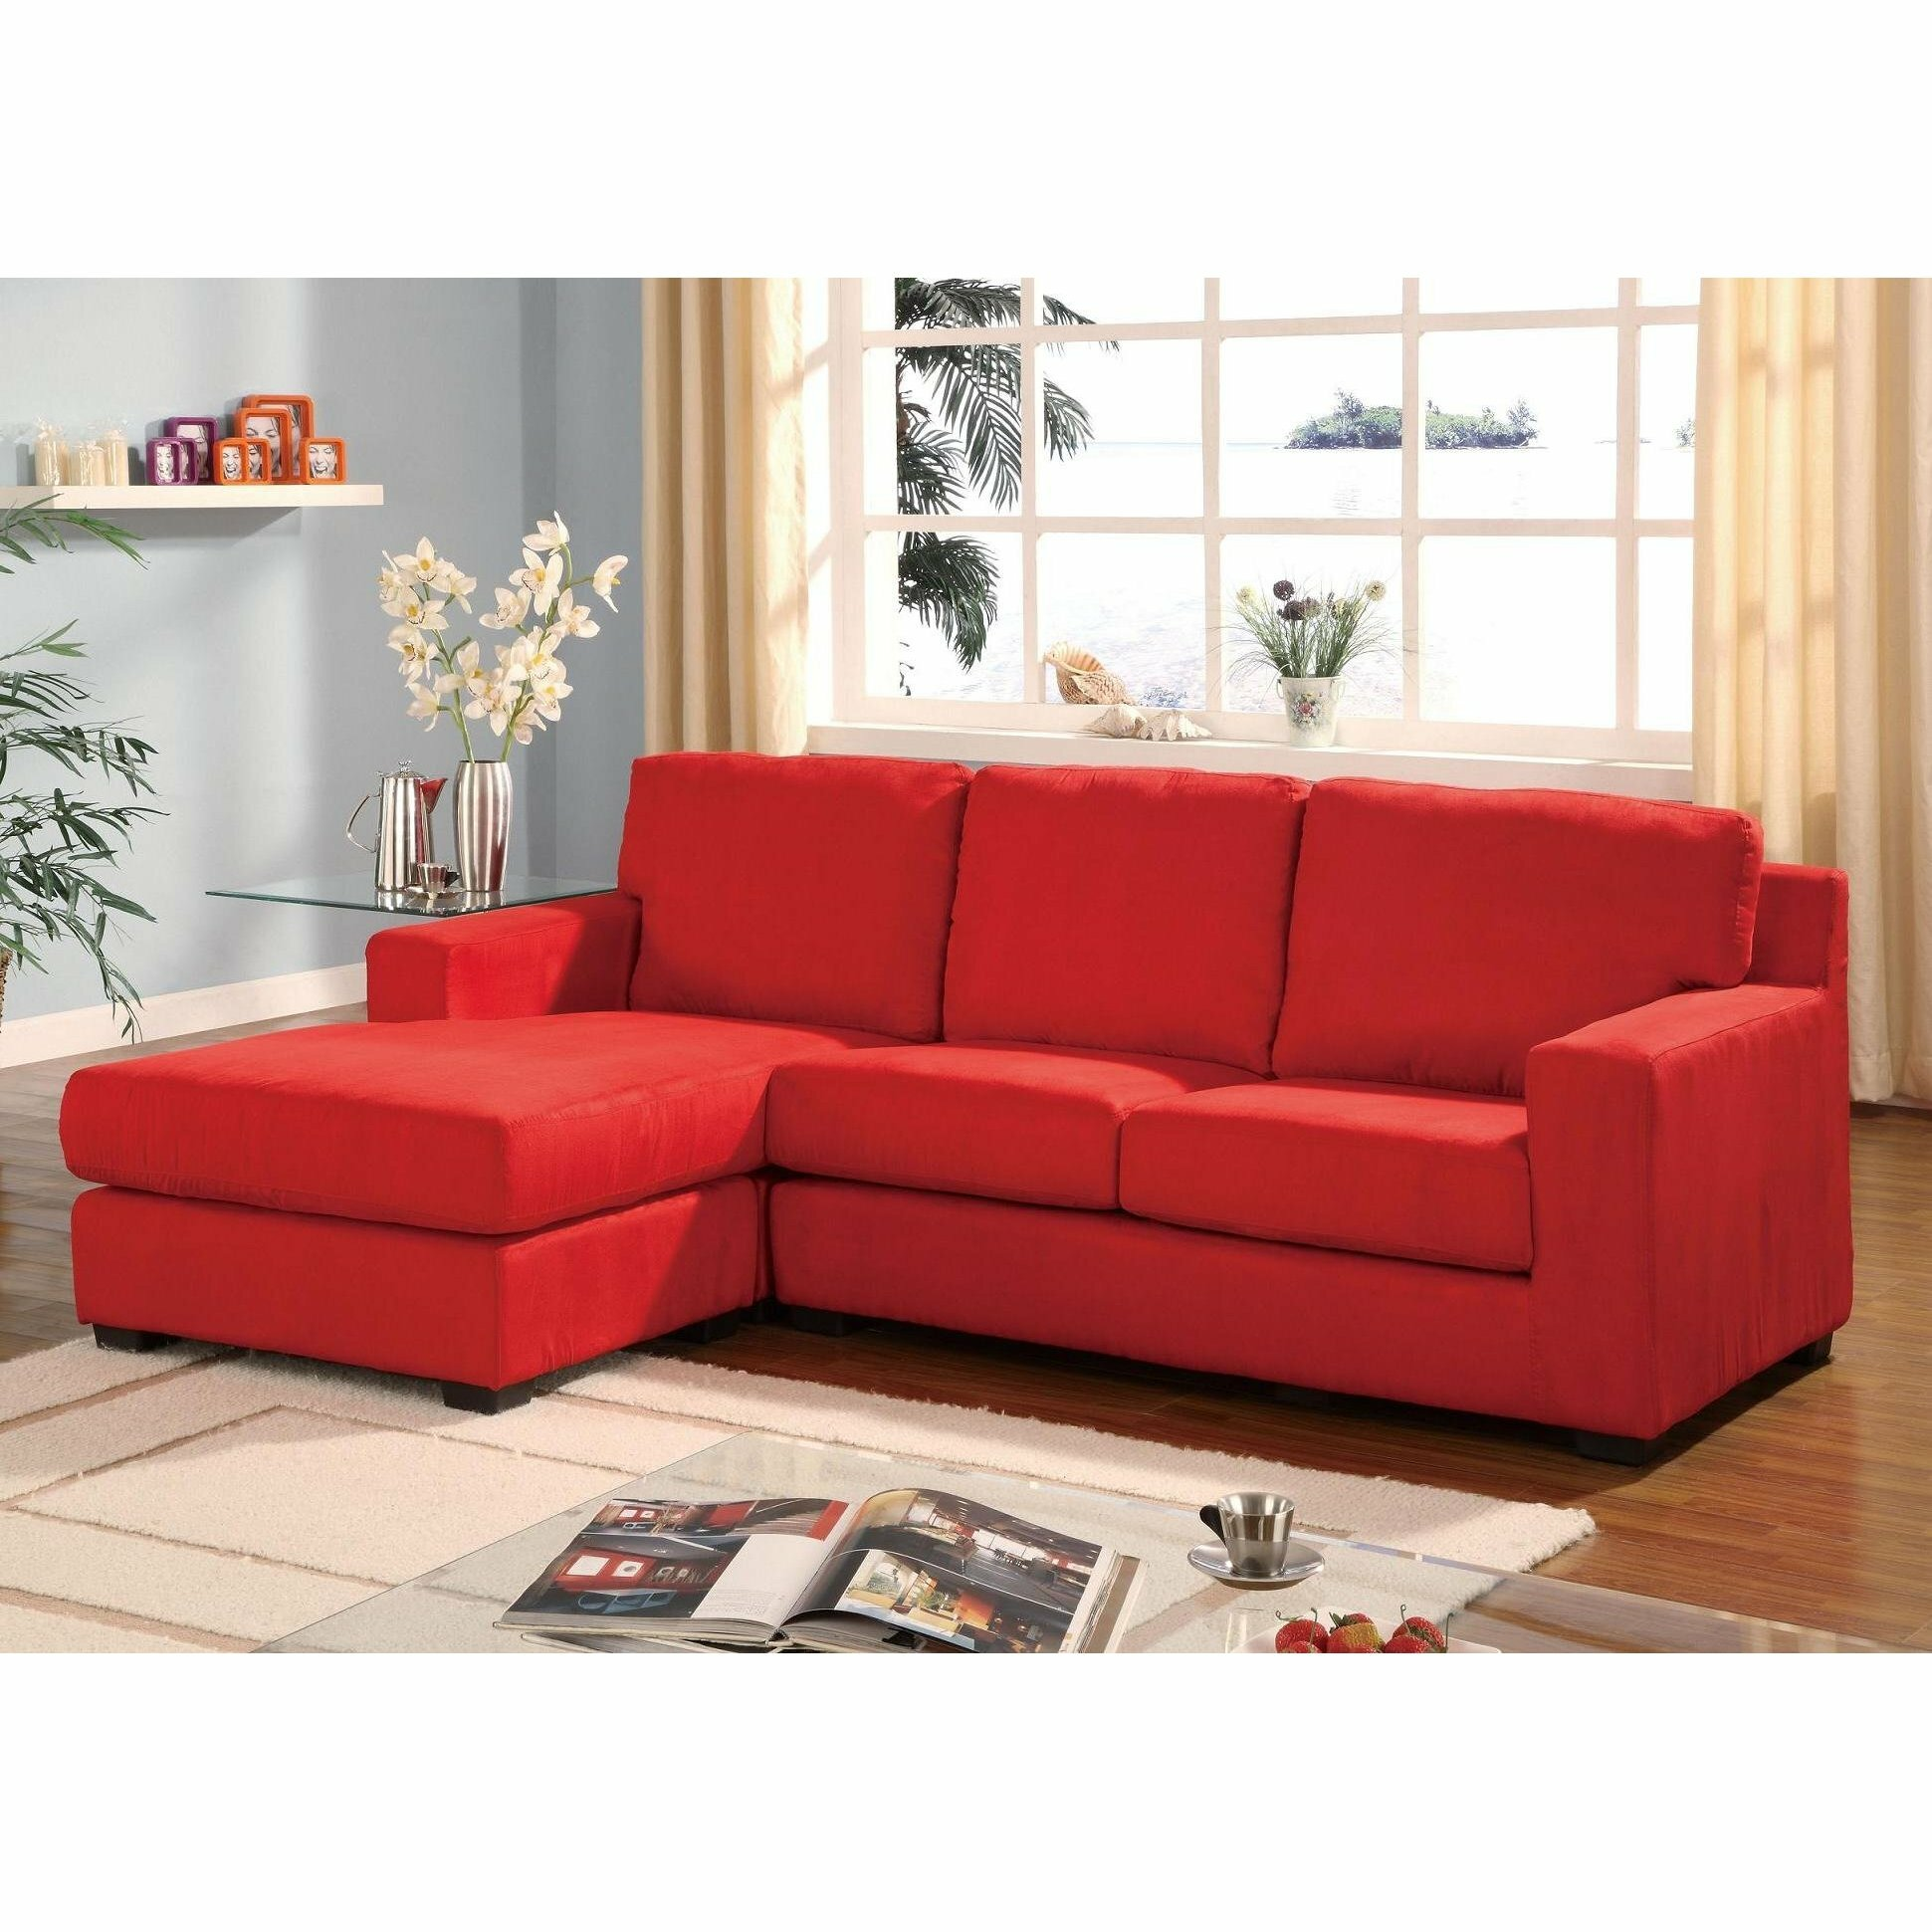 Small sectional sofa with chaise sofachaise sectional for Big comfy chaise lounge